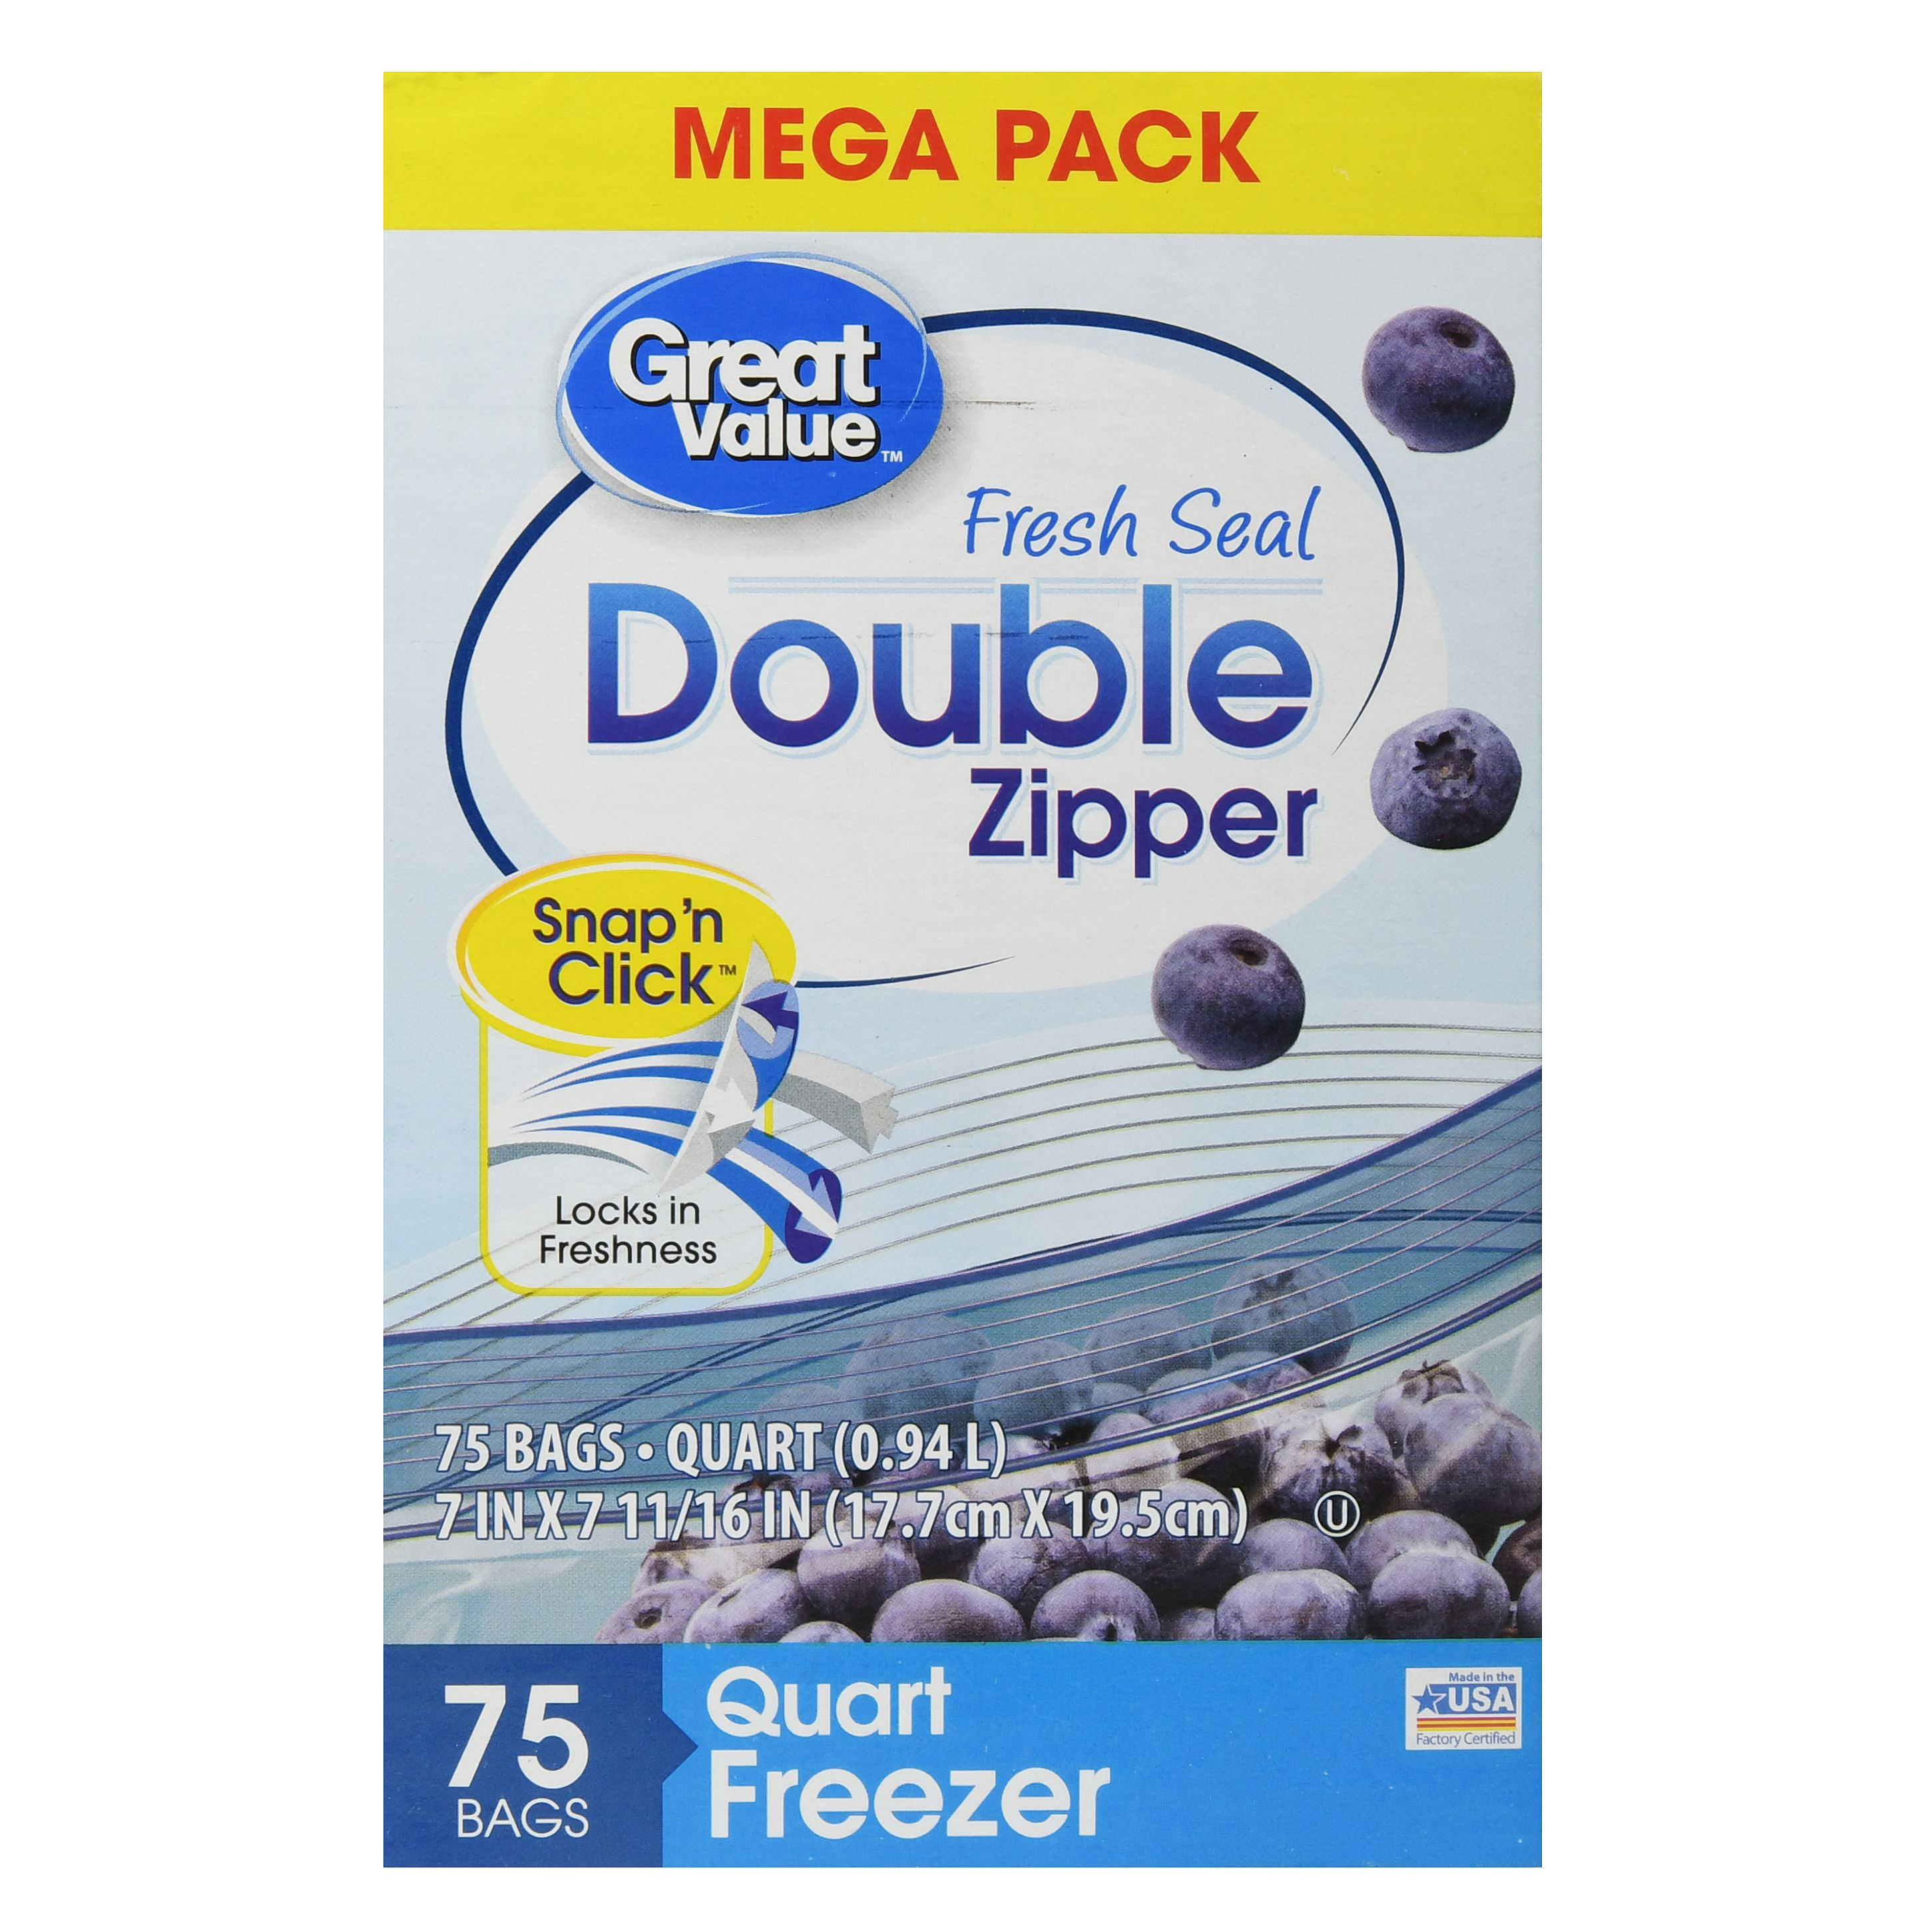 Great Value Double Zipper Freezer Bags, Mega Pack, Quart, 75 Count